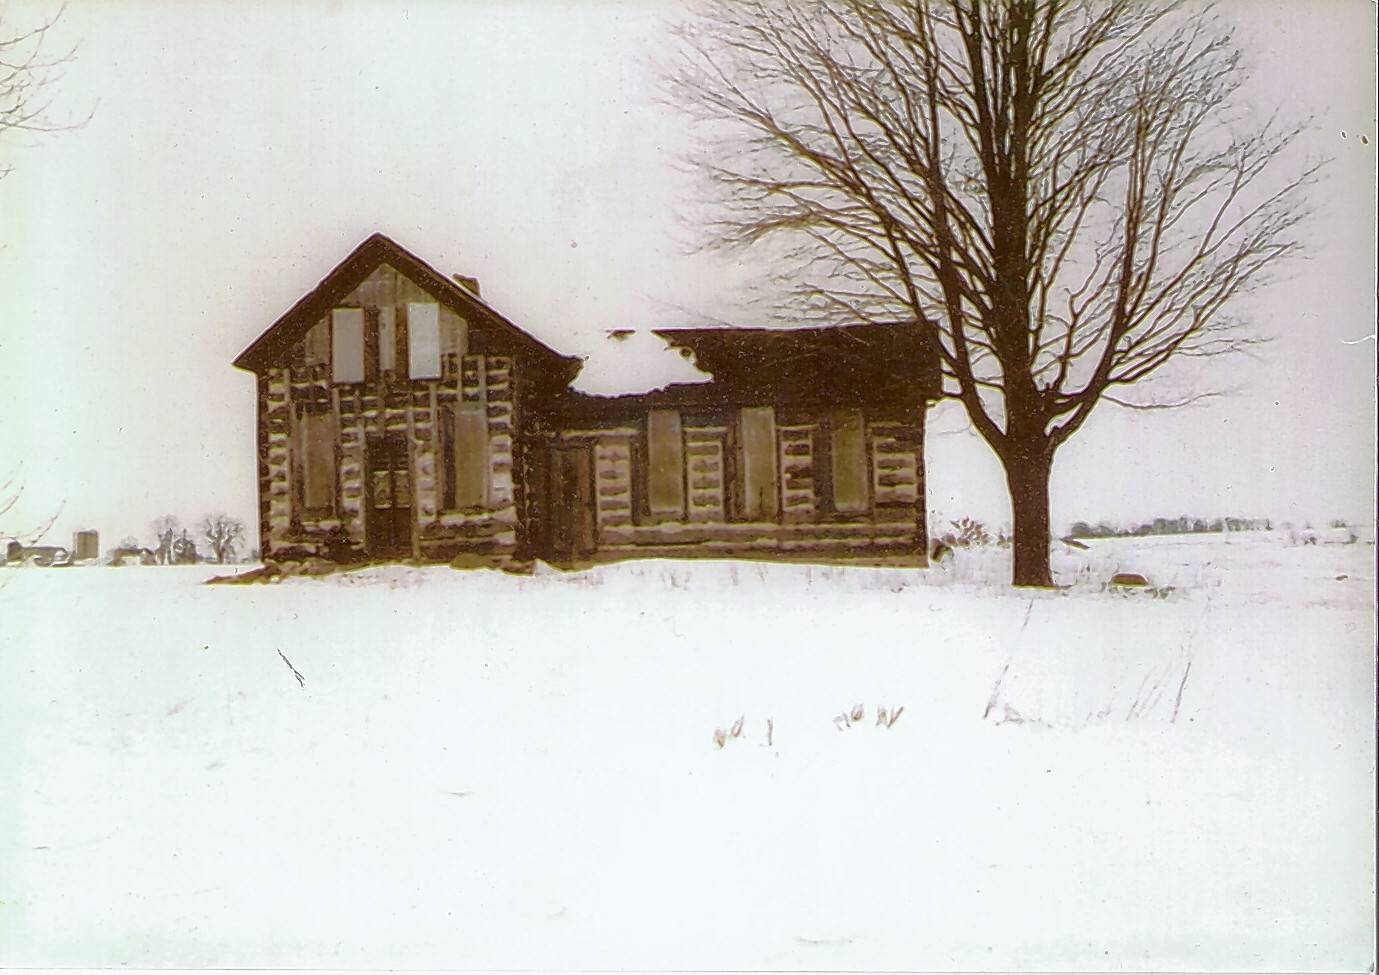 The earliest known photo of the log cabin in Appleton, Wisconsin, before it was moved to Barrington Hills.